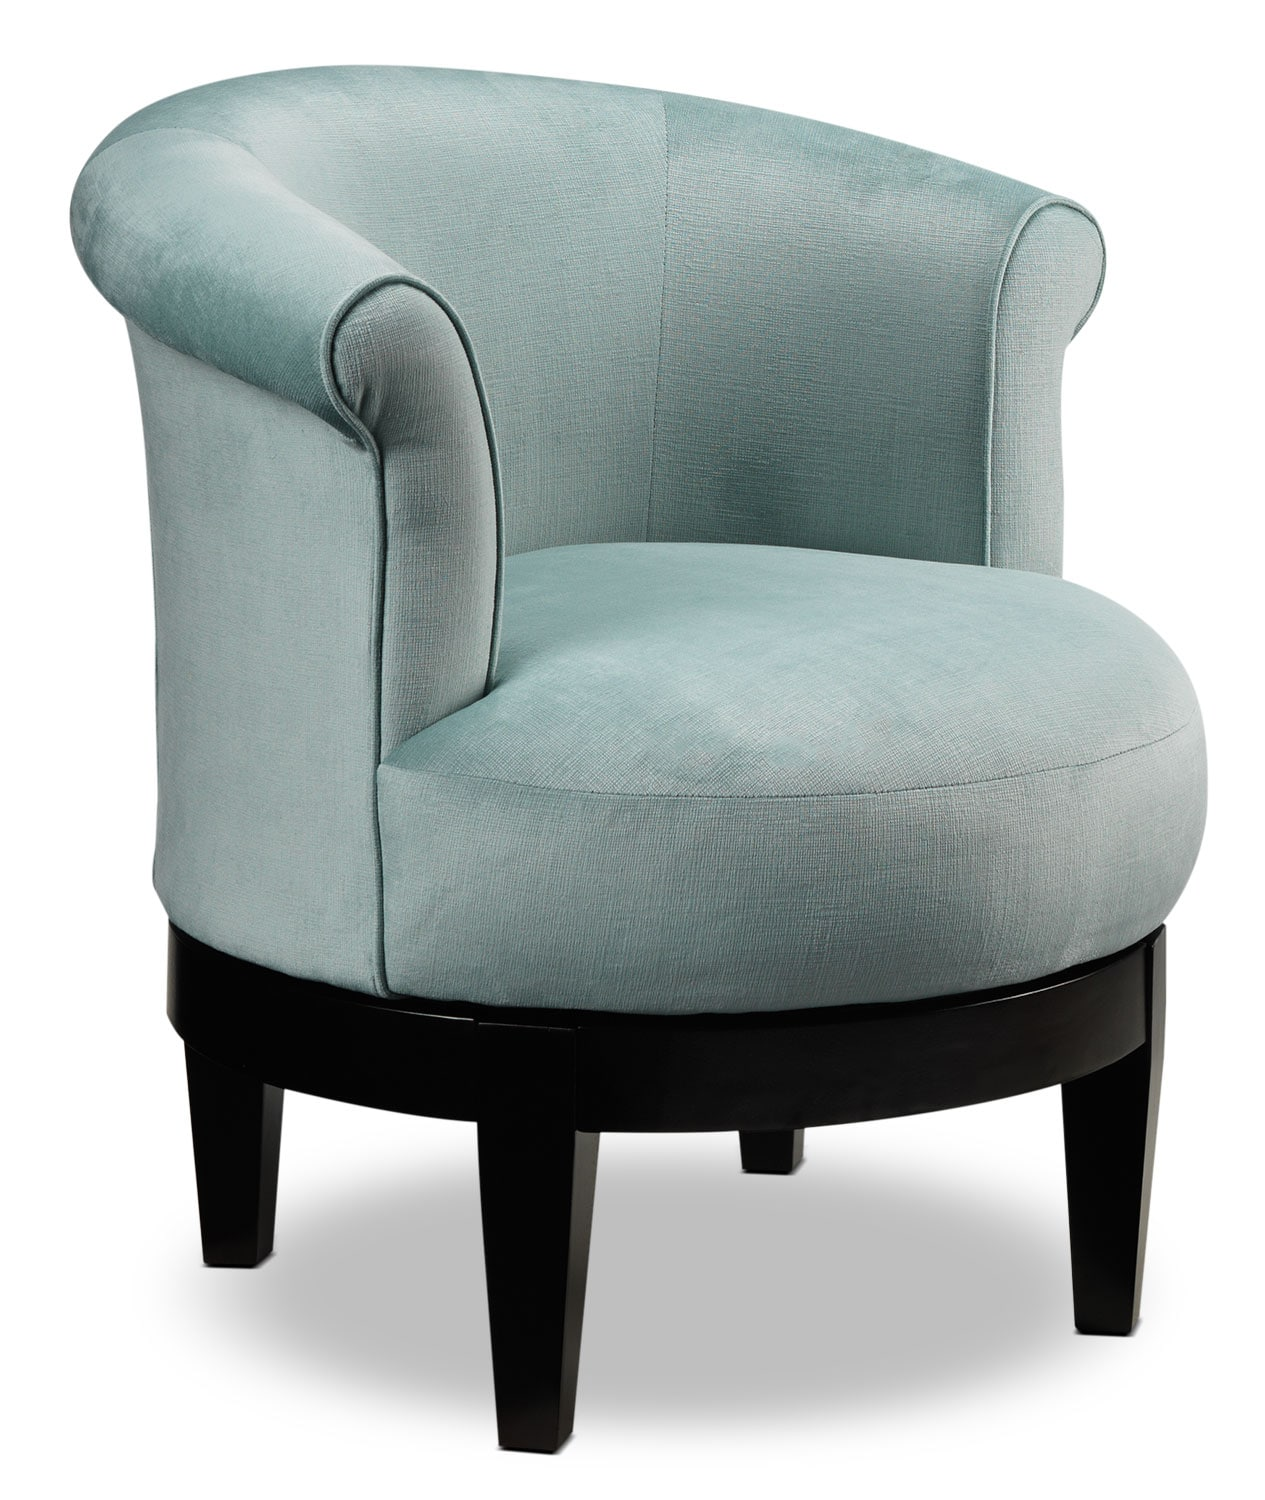 aqua accent chair ball with arms attica swivel leon 39s